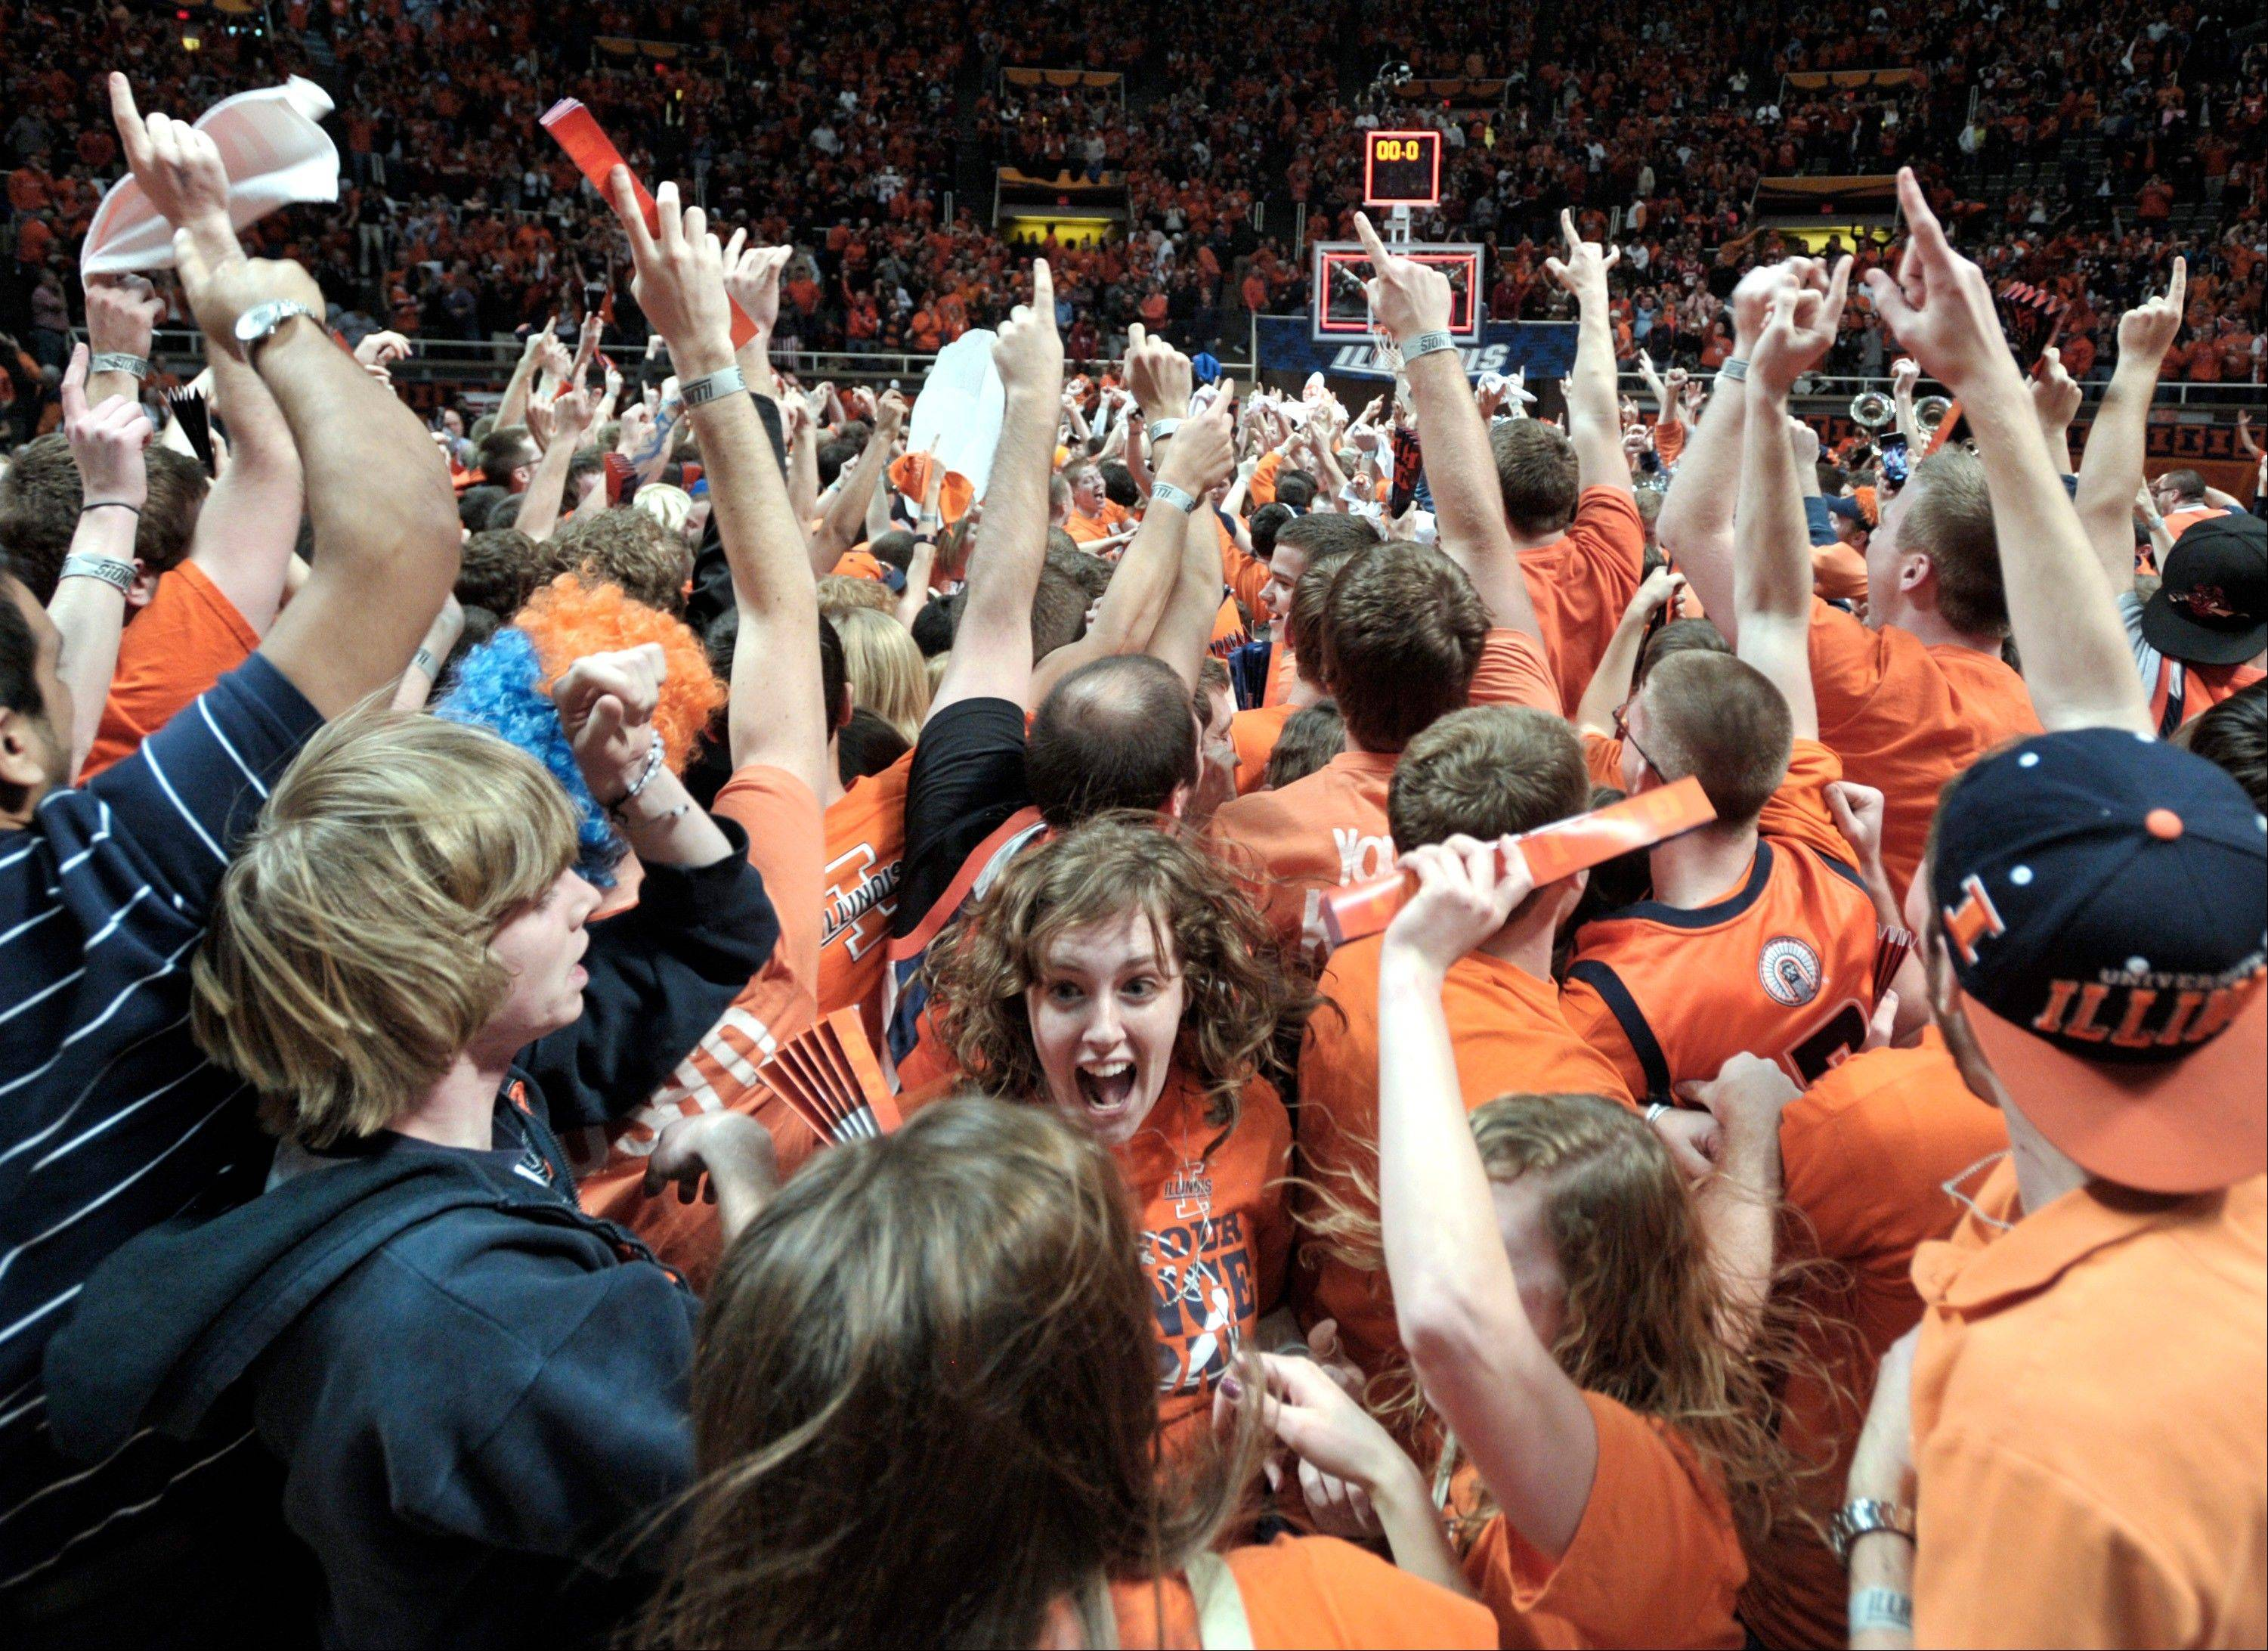 Illinois fans celebrate after the Illini upset No. 1-ranked Indiana 74-72 Thursday at Assembly Hall in Champaign.